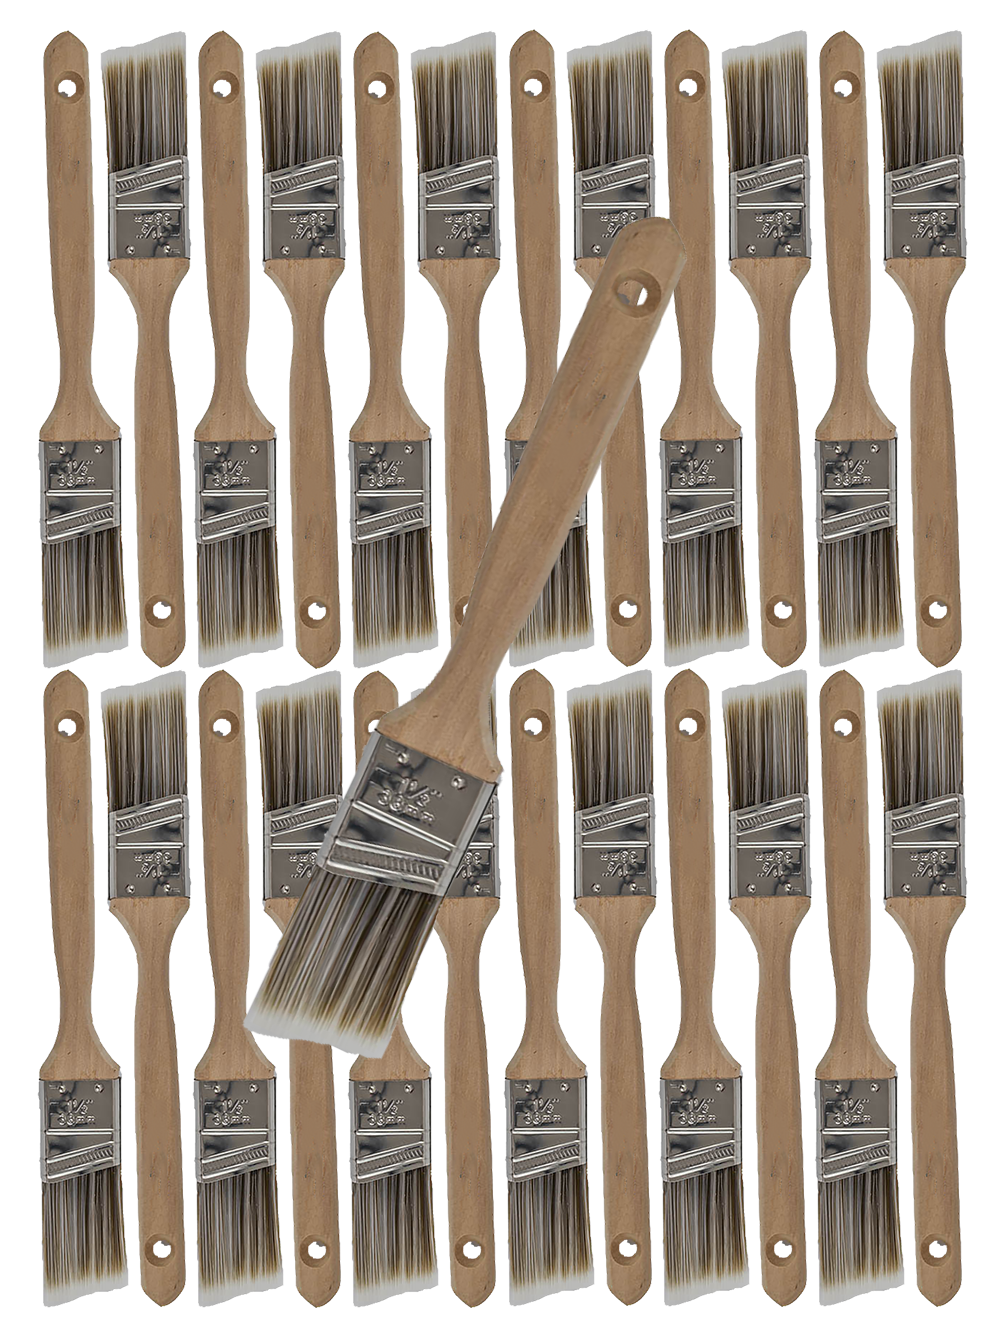 24PK 1.5 Angle House Wall,Trim Paint Brush Set Home Exterior or Interior Brushes